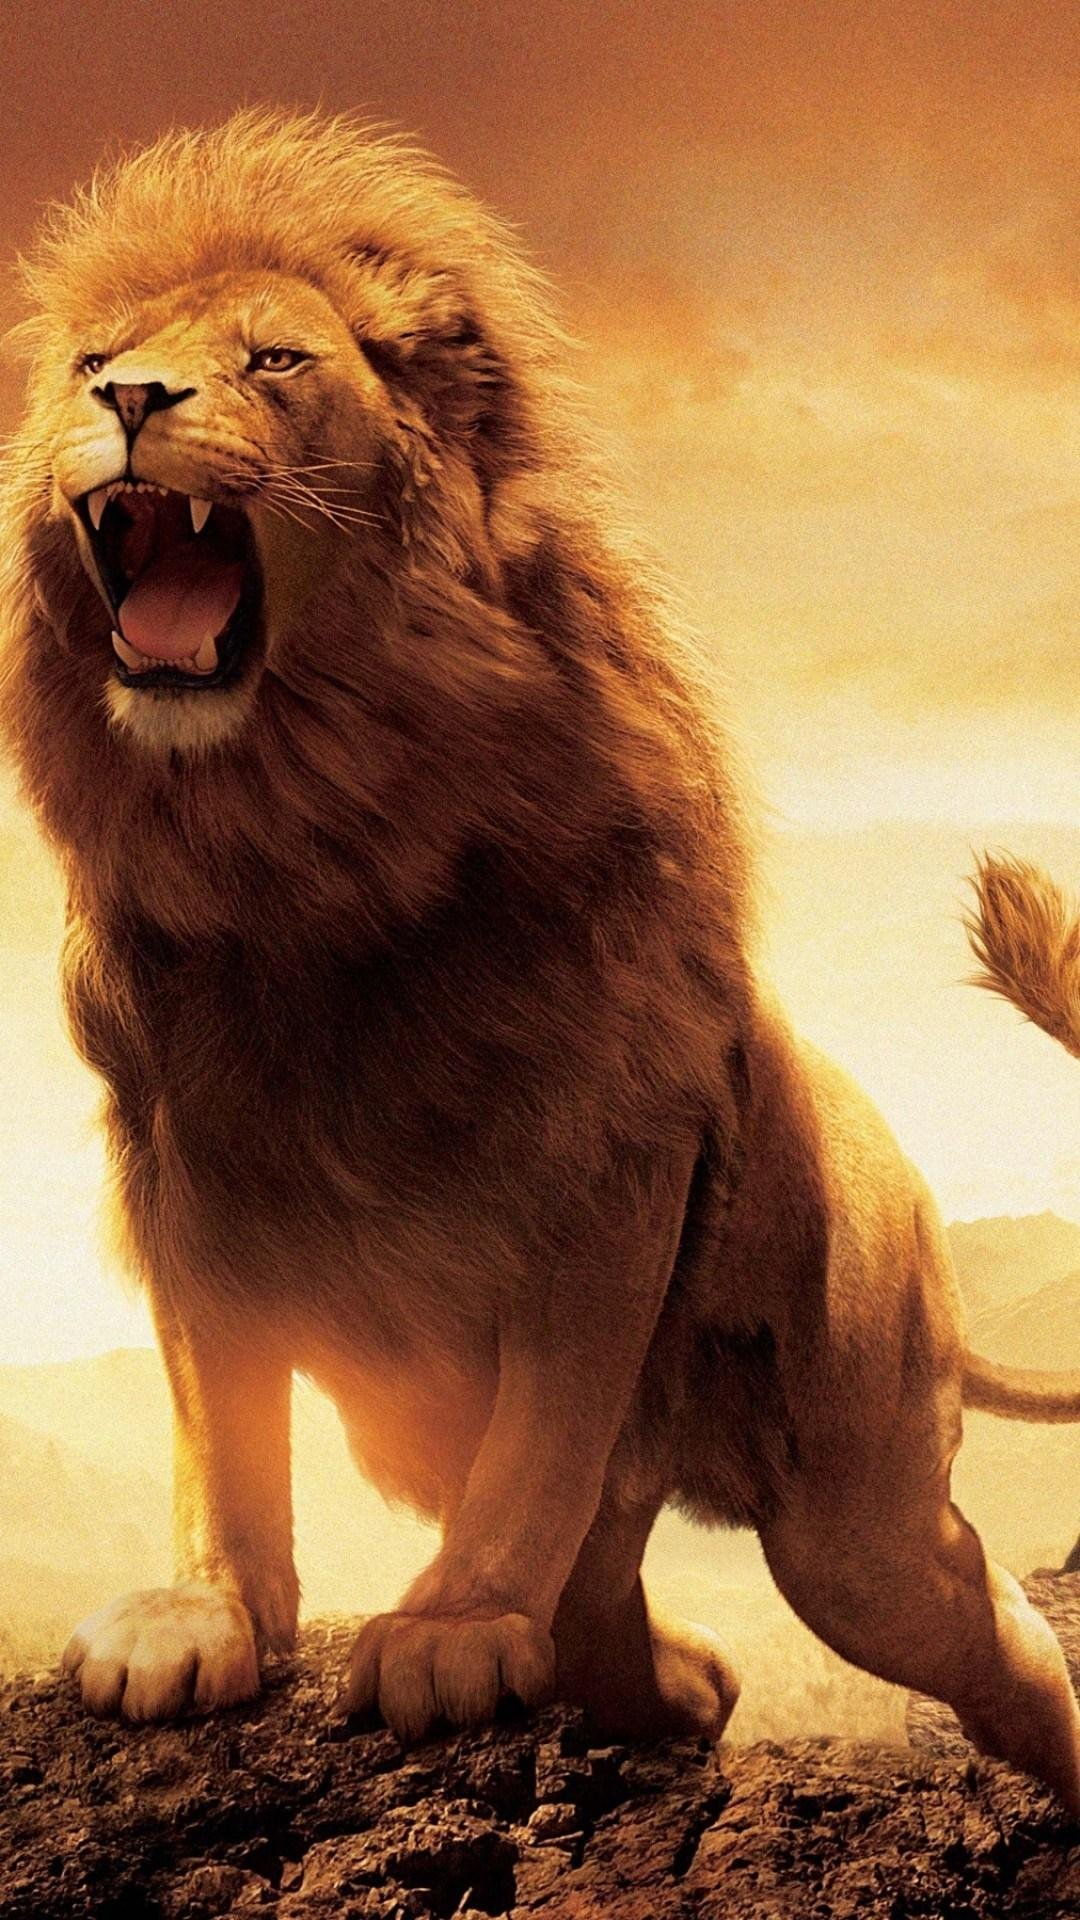 Lion Roaring Wallpapers Kolpaper Awesome Free Hd Wallpapers